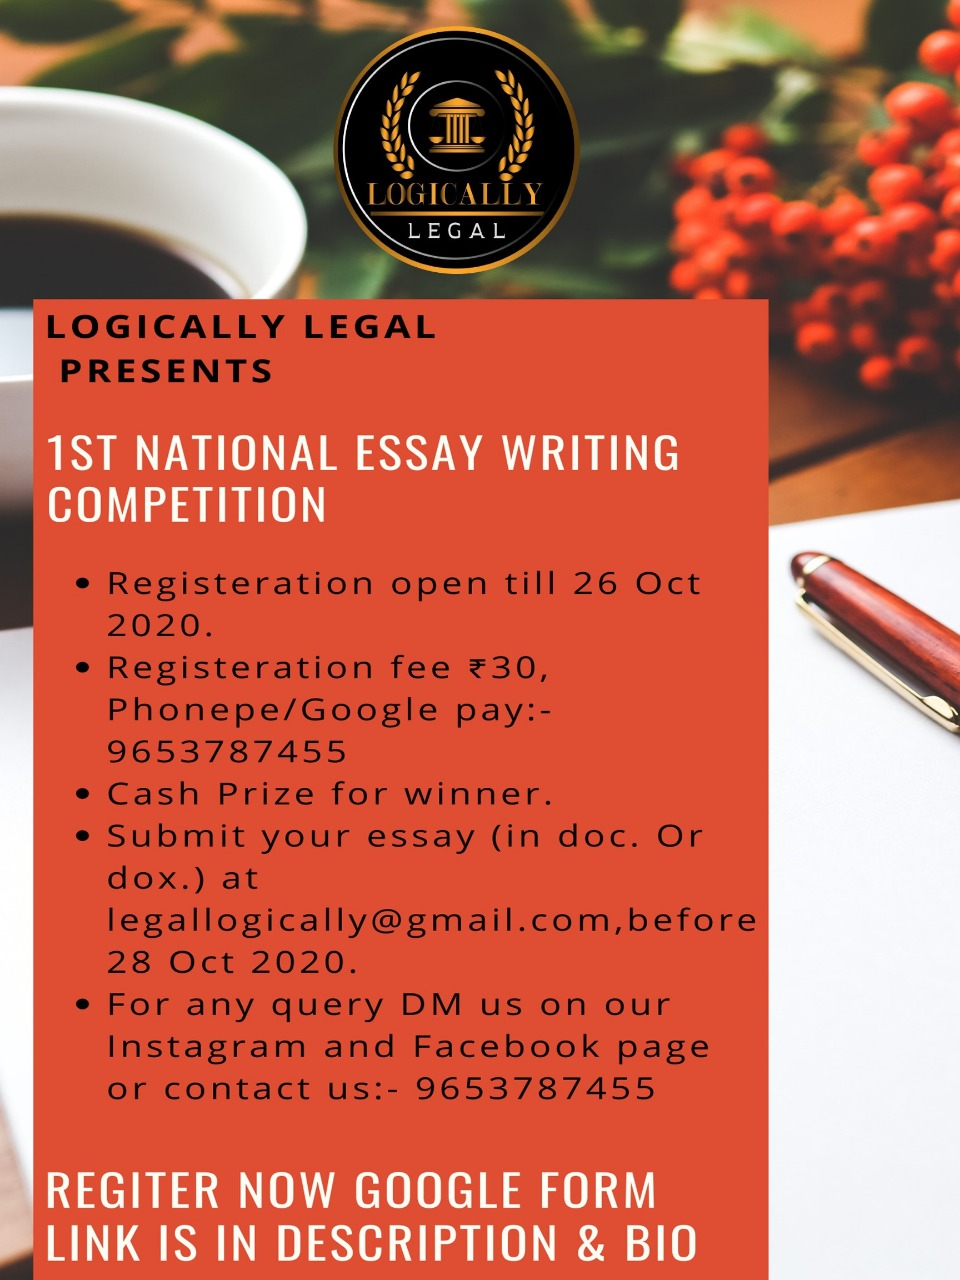 1ST NATIONAL ESSAY WRITING COMPETITION BY LOGICALLYLEGAL